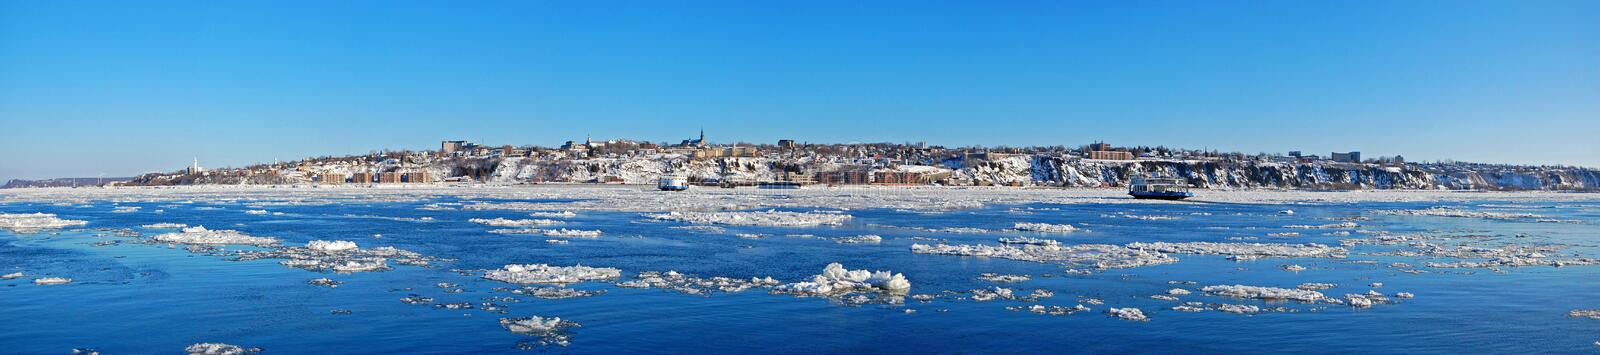 Levis City skyline and St. Lawrence River, Quebec, Canada stock photos